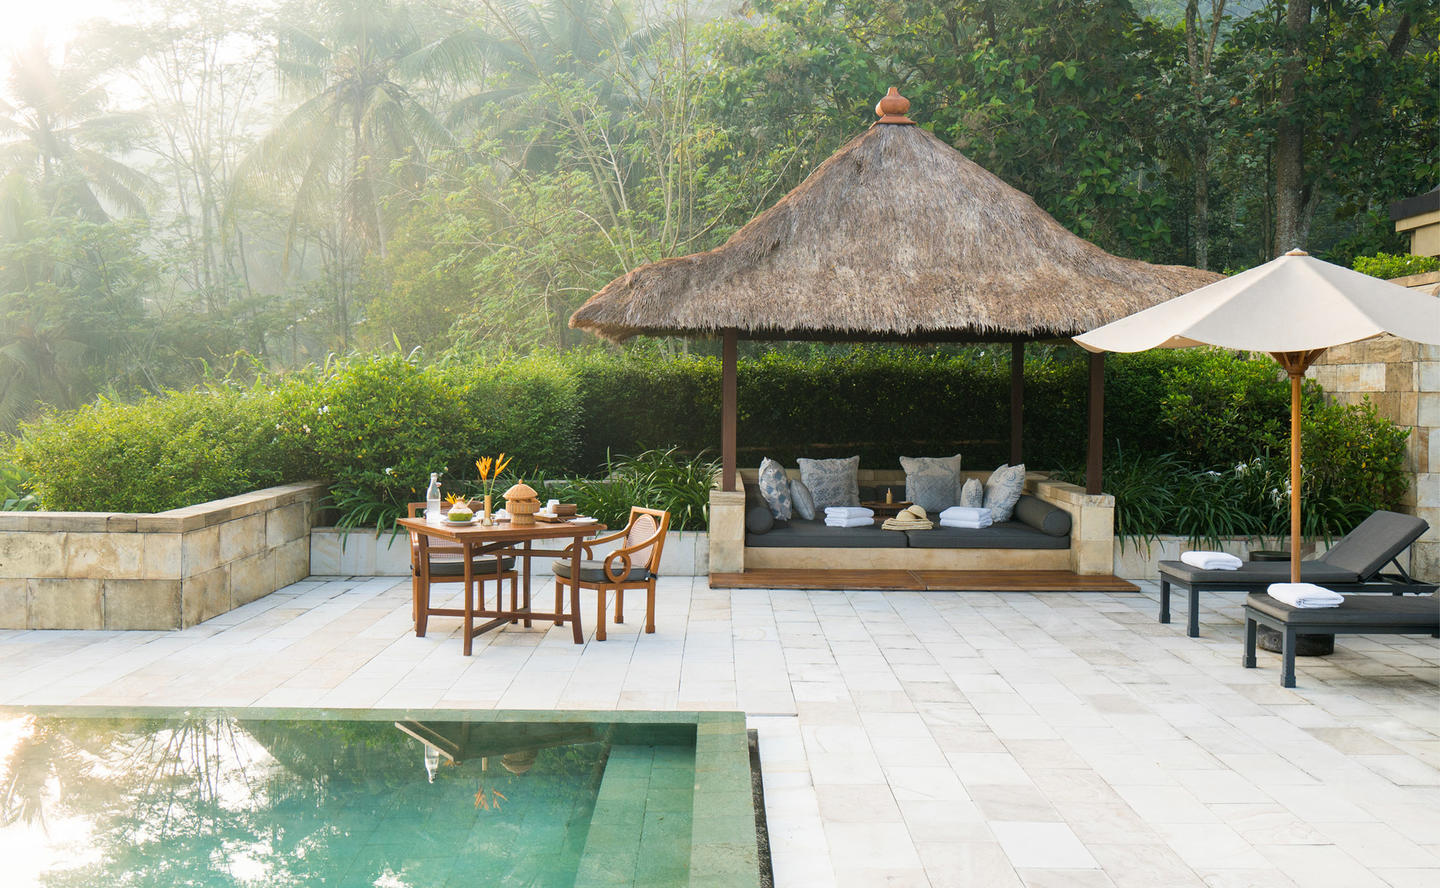 Poolside Relaxation Area, Dalem Jiwo Suite - Amanjiwo, Java, Indonesia